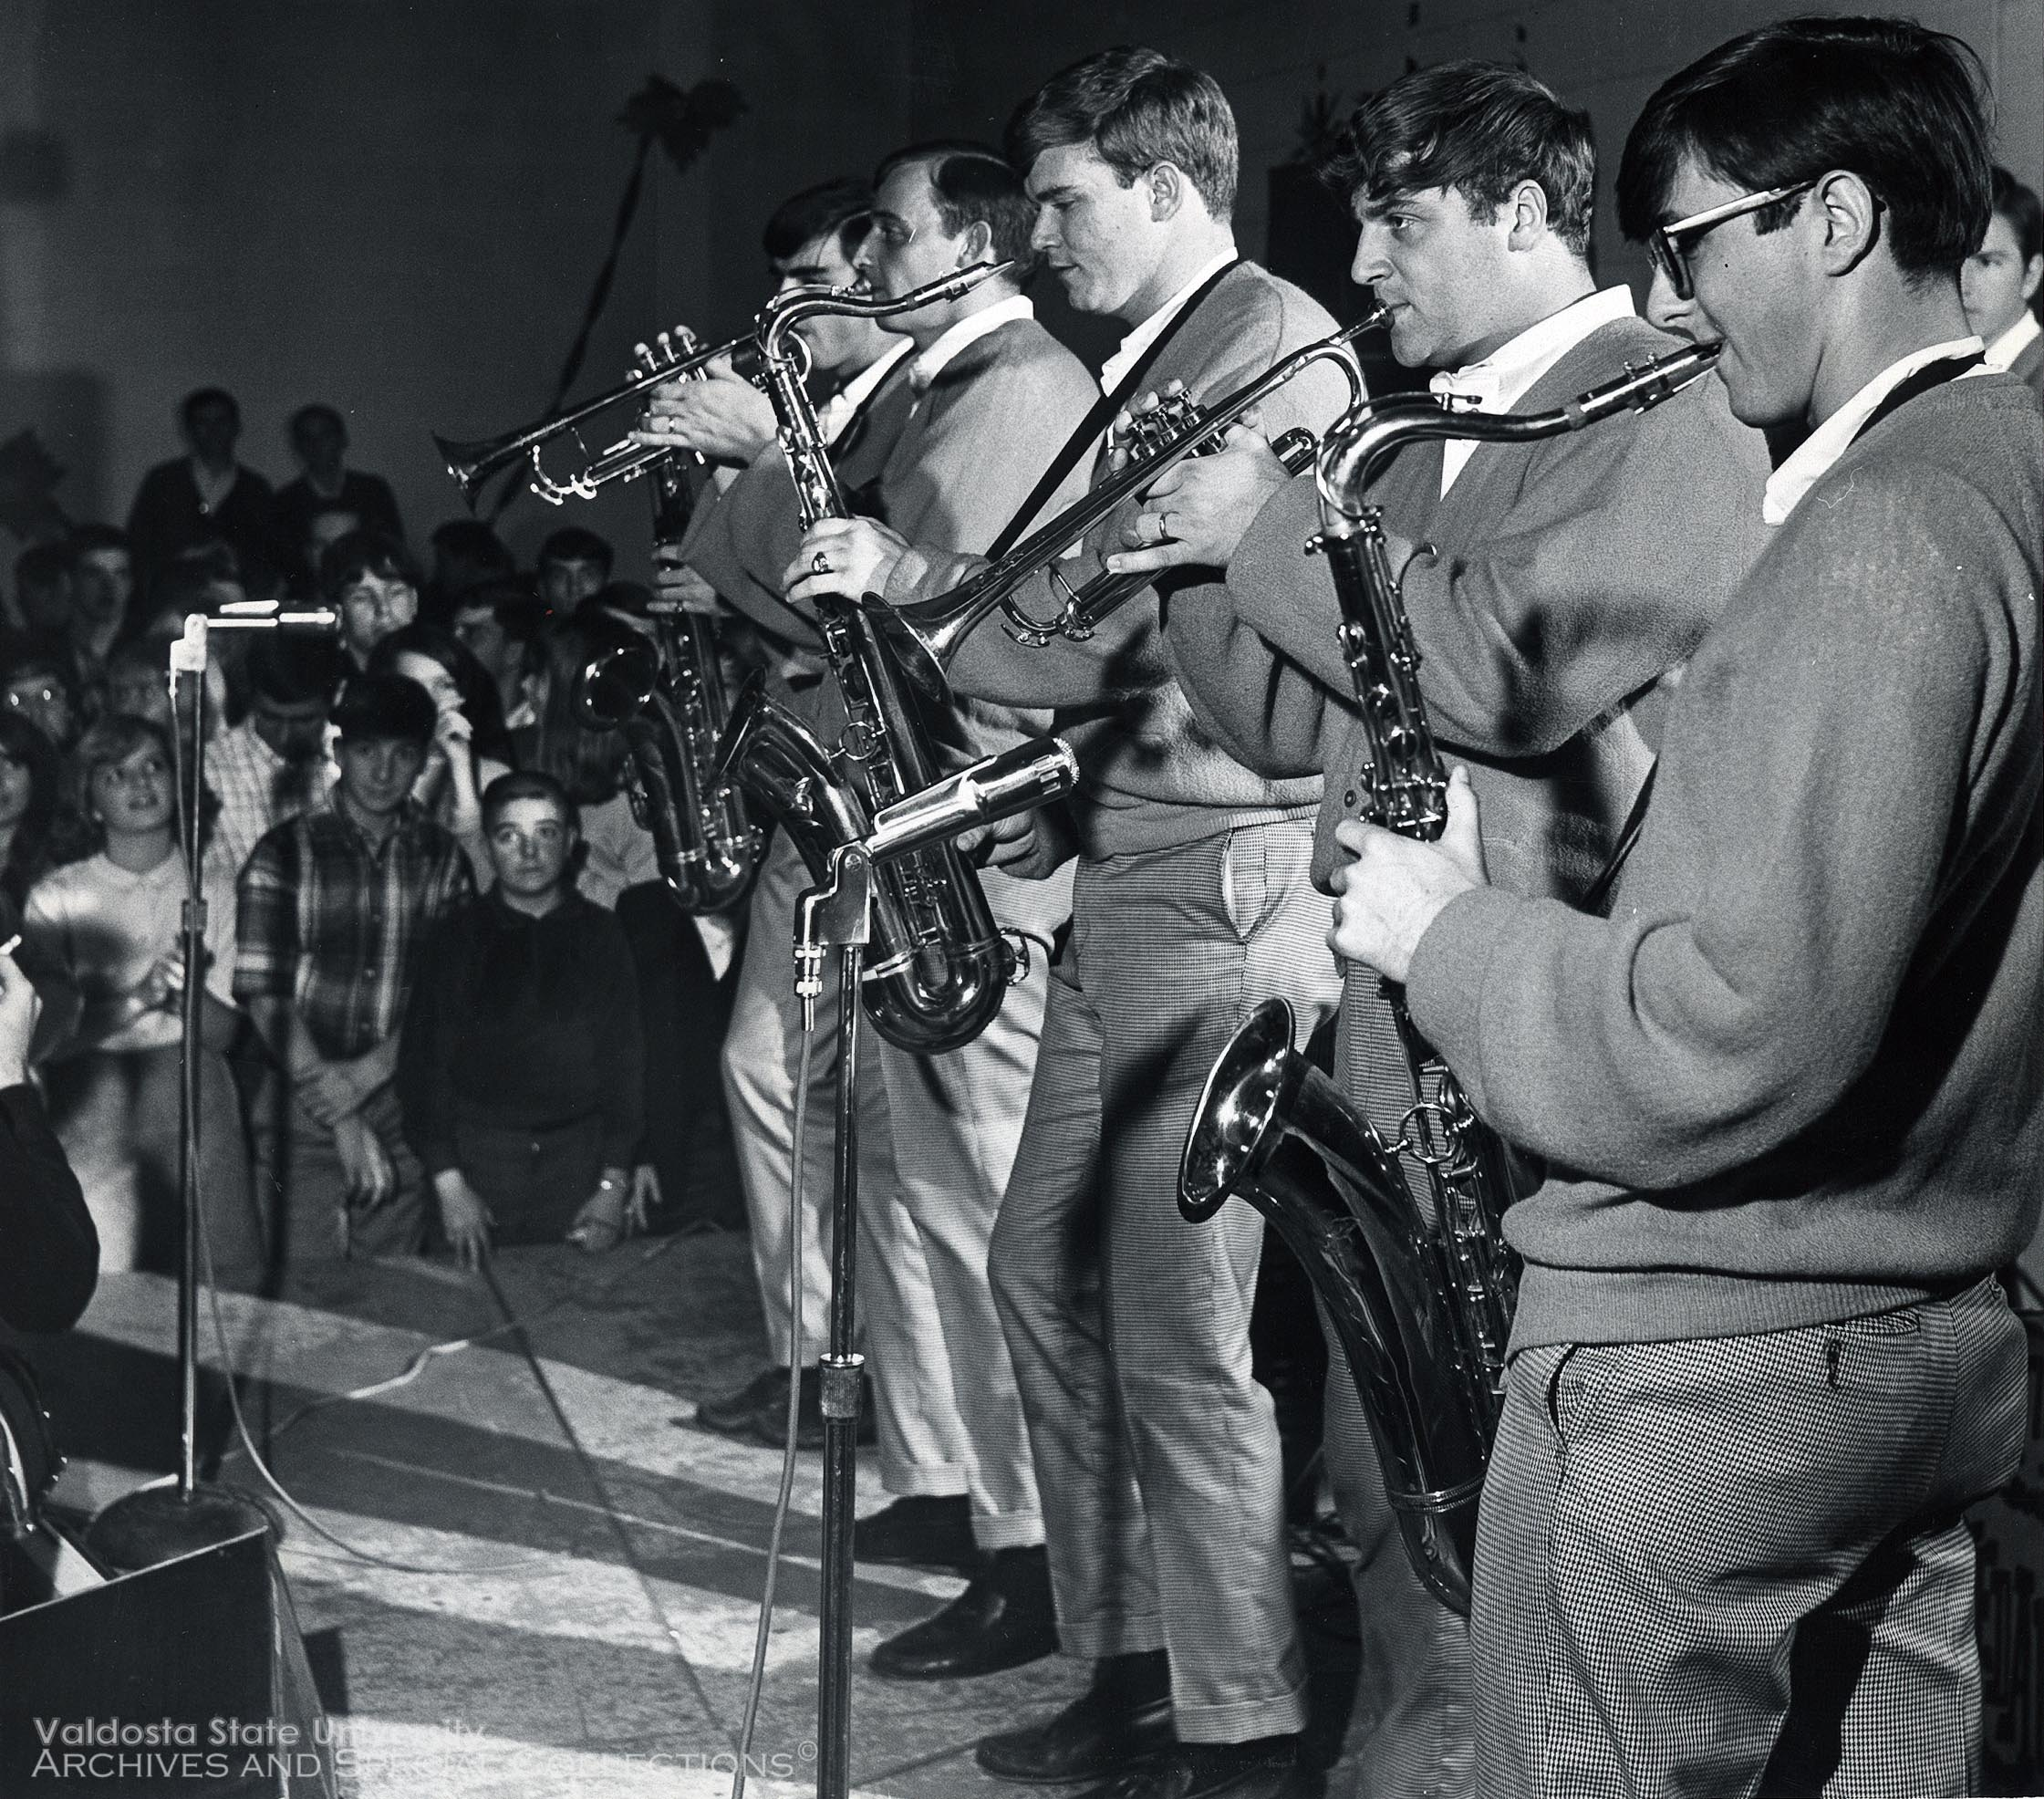 1967, The Medallions Perform On Campus